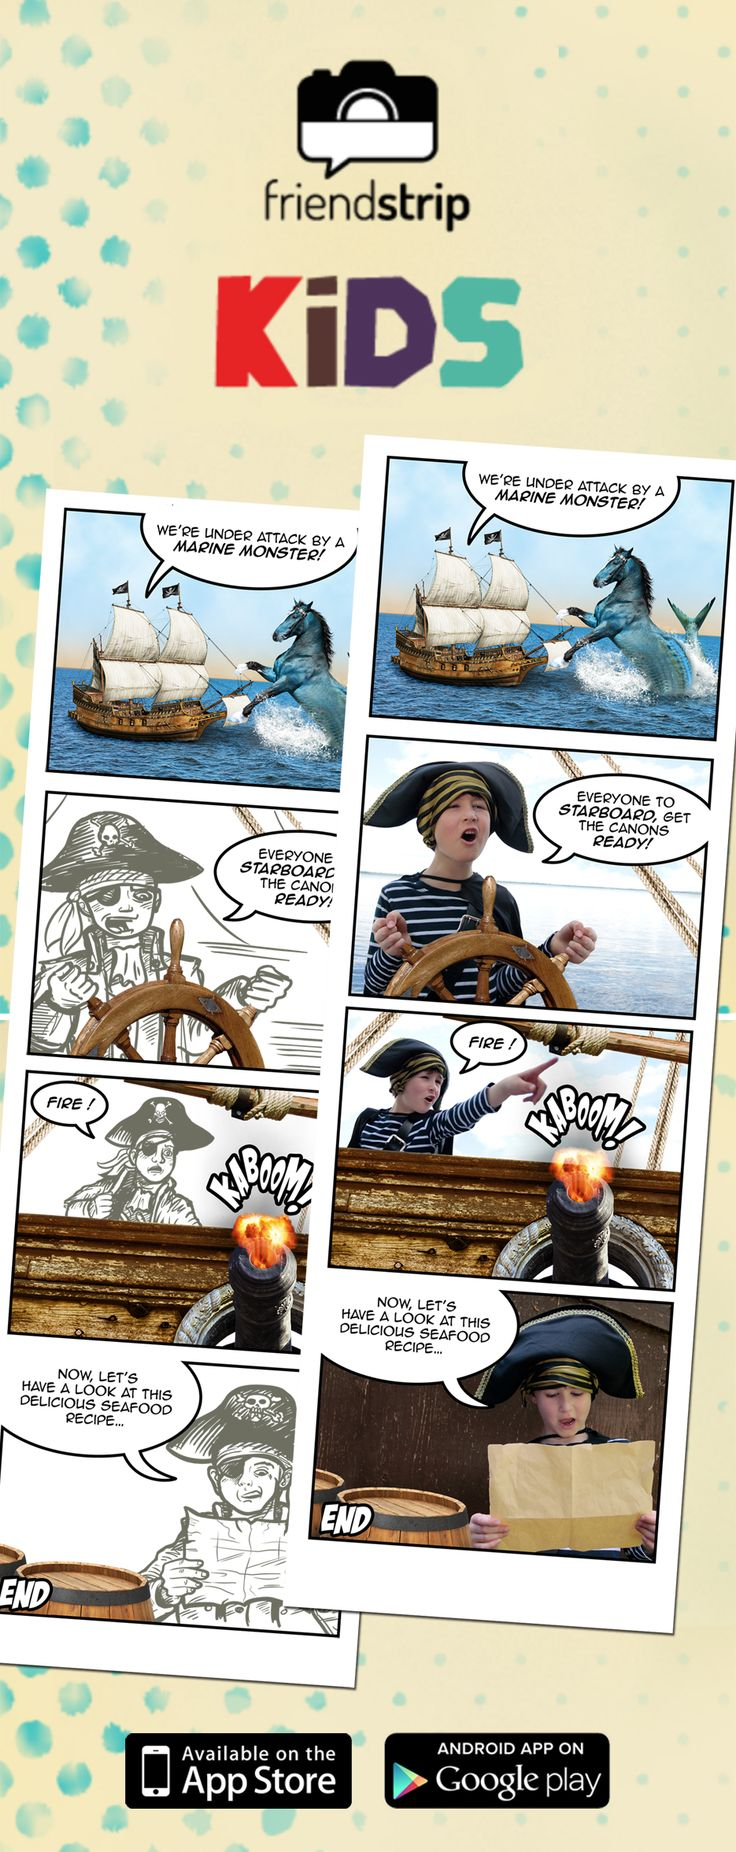 A one-of-its-kind app to take pictures with your kids and create personalized comic strips!